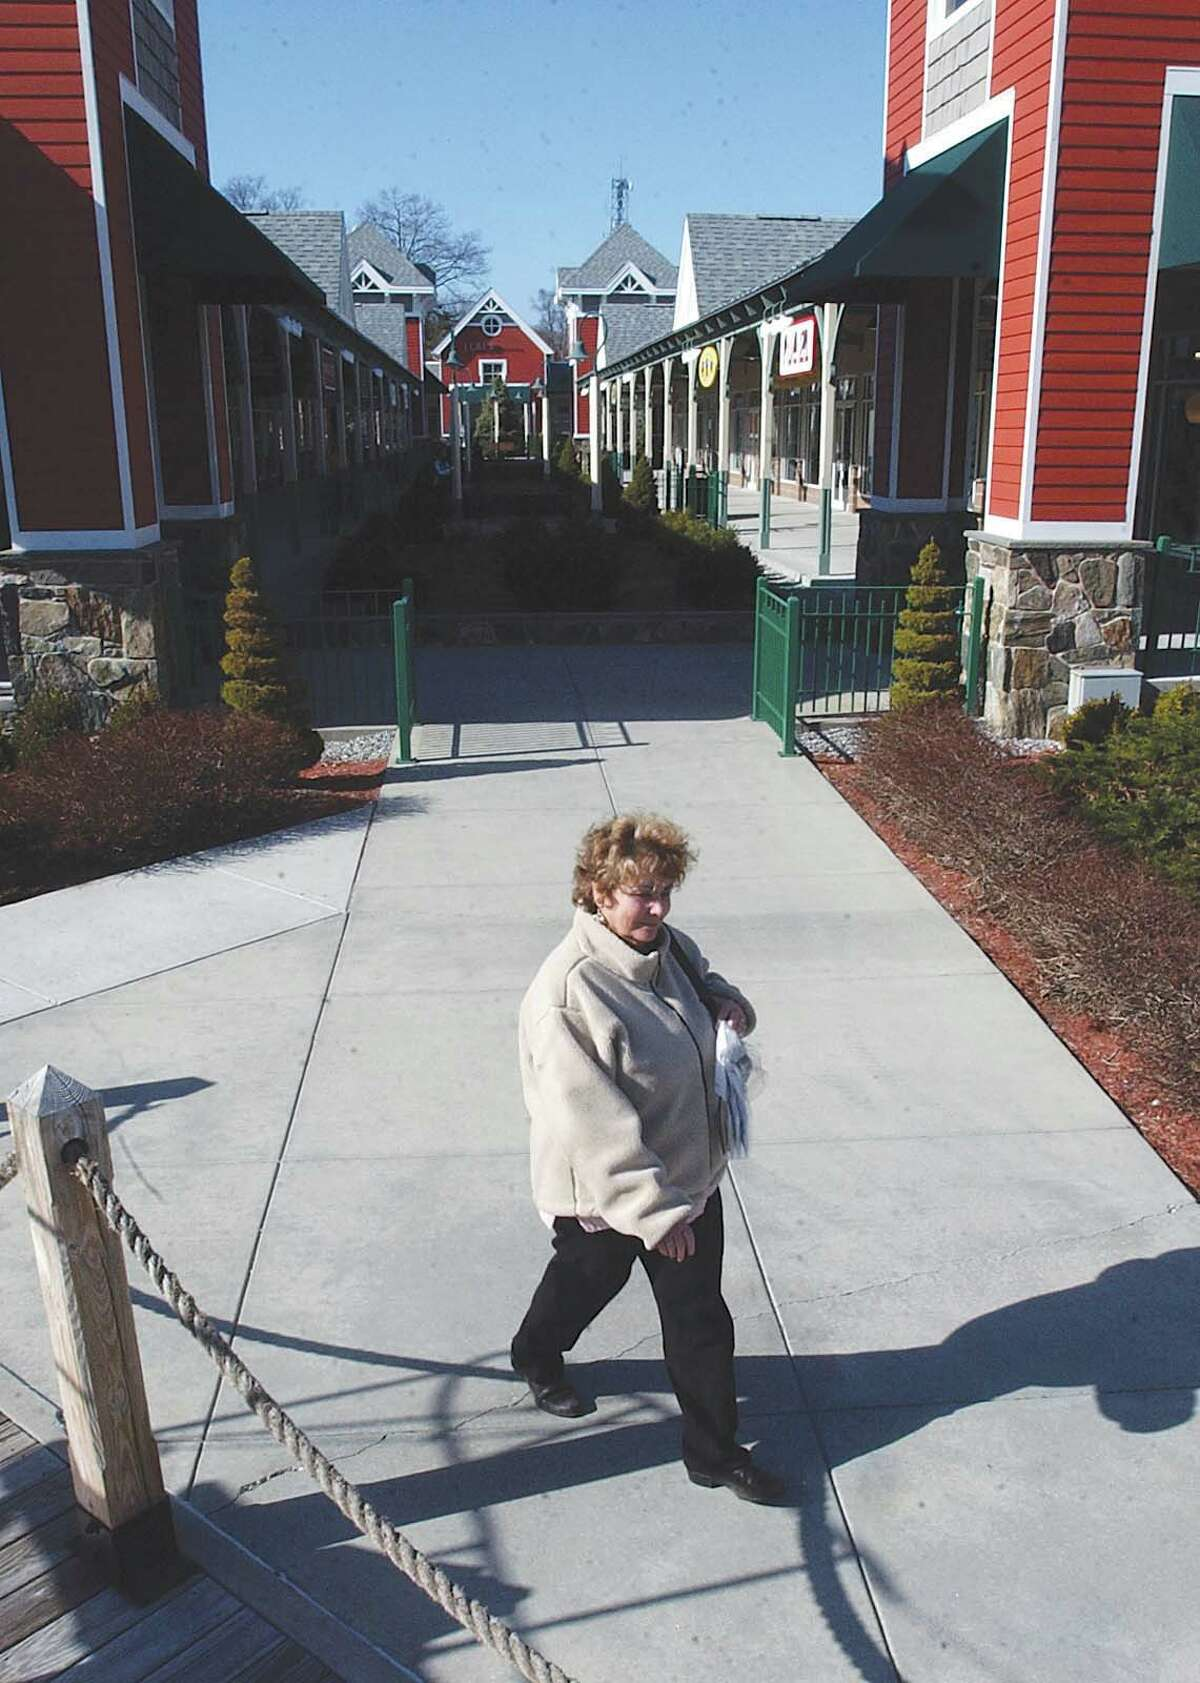 Westbrook Outlets is adding an indoor ice skating rink in a bid to differentiate the retail center from its rivals along the Shoreline. Photo date: March 29, 2004